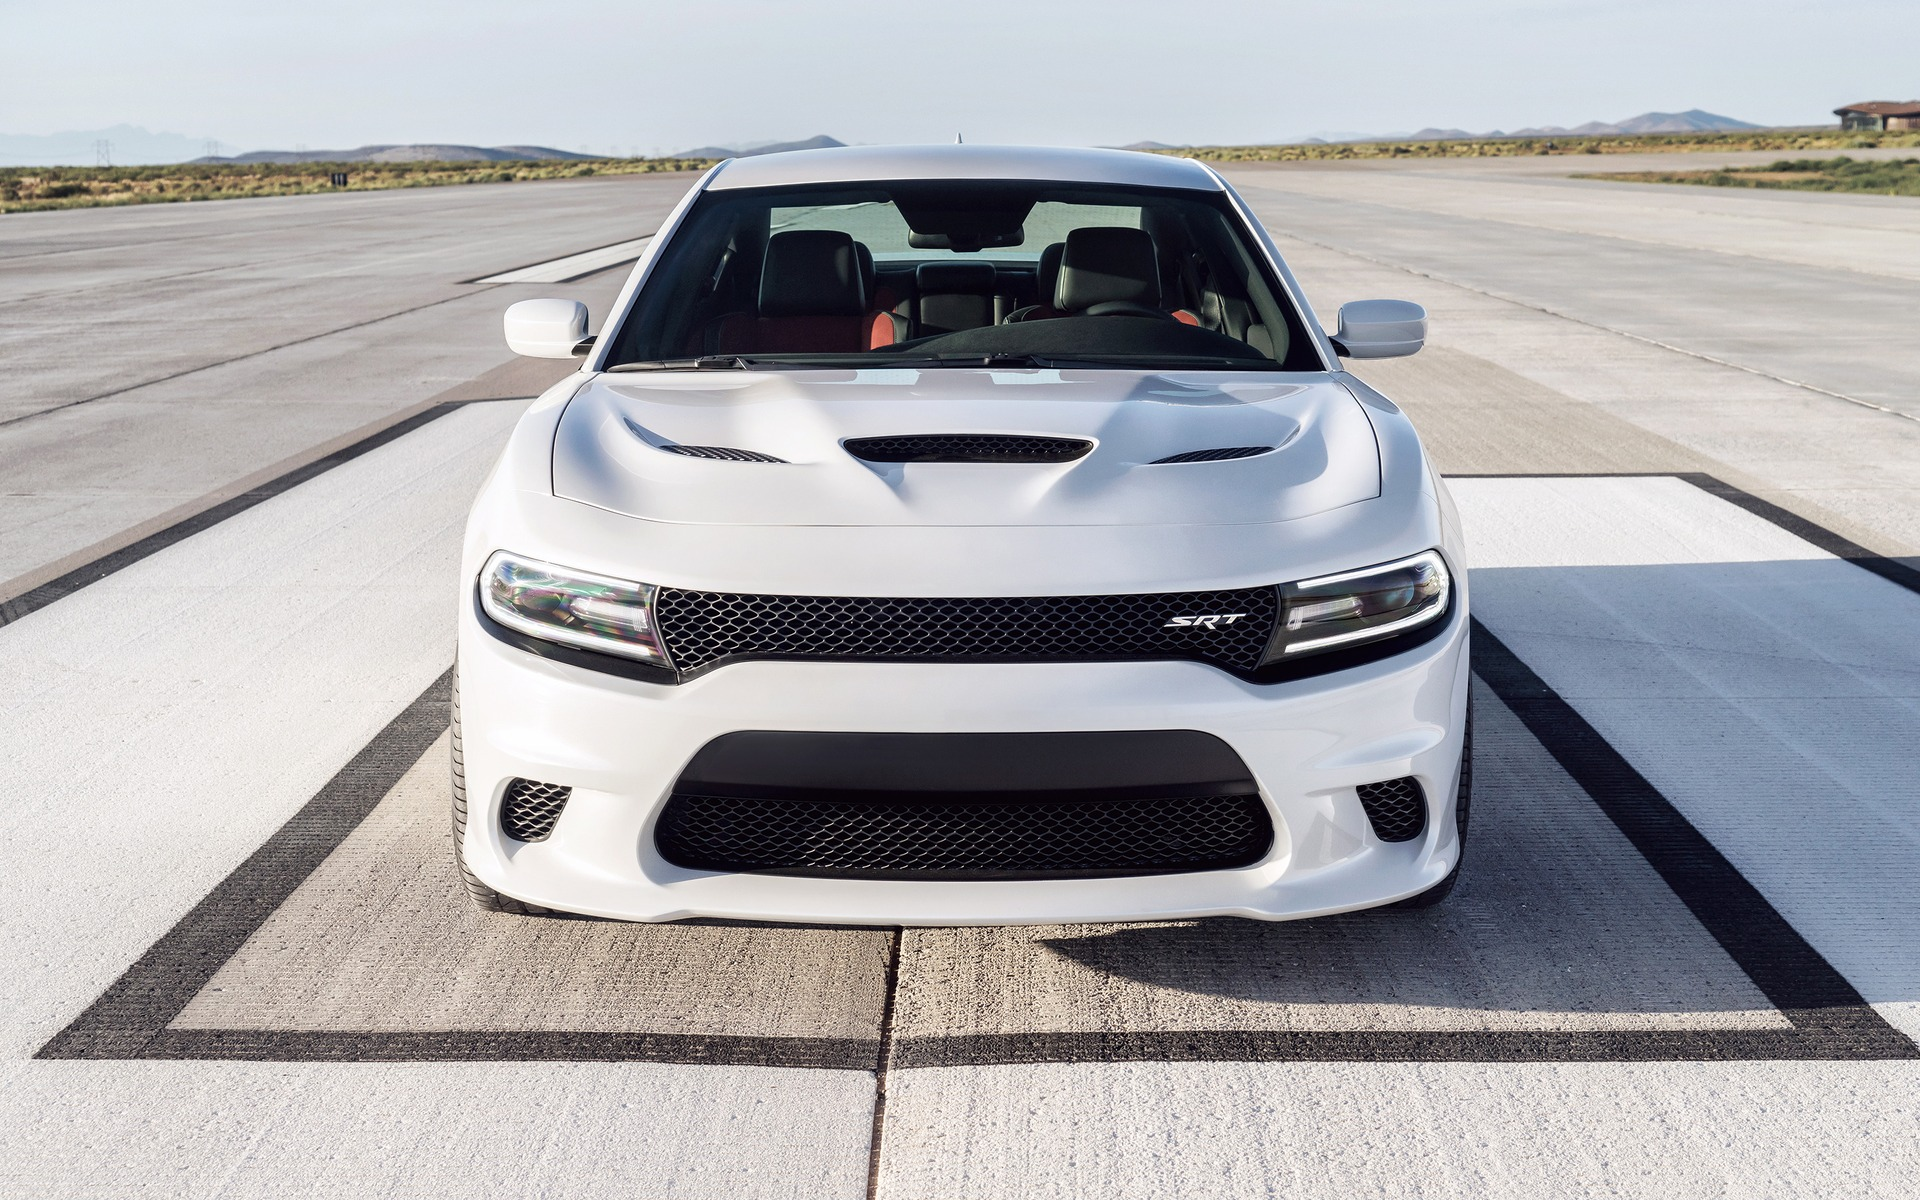 dodge charger hellcat 2015 galerie photo 6 7 le guide de l 39 auto. Black Bedroom Furniture Sets. Home Design Ideas